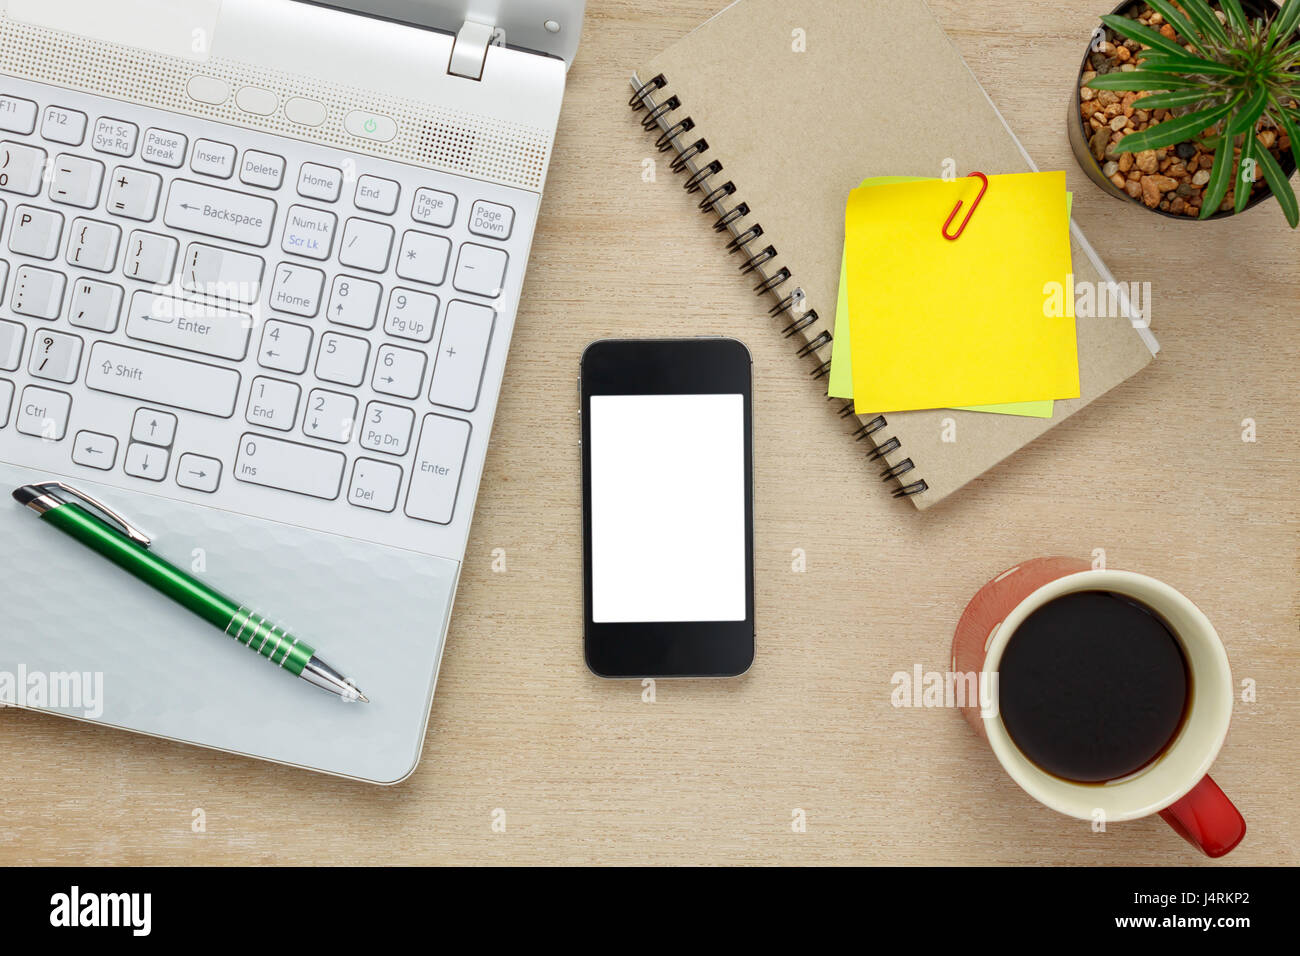 Fabulous Top View Accessories Office Desk The Mobile Phone Note Stock Download Free Architecture Designs Terchretrmadebymaigaardcom